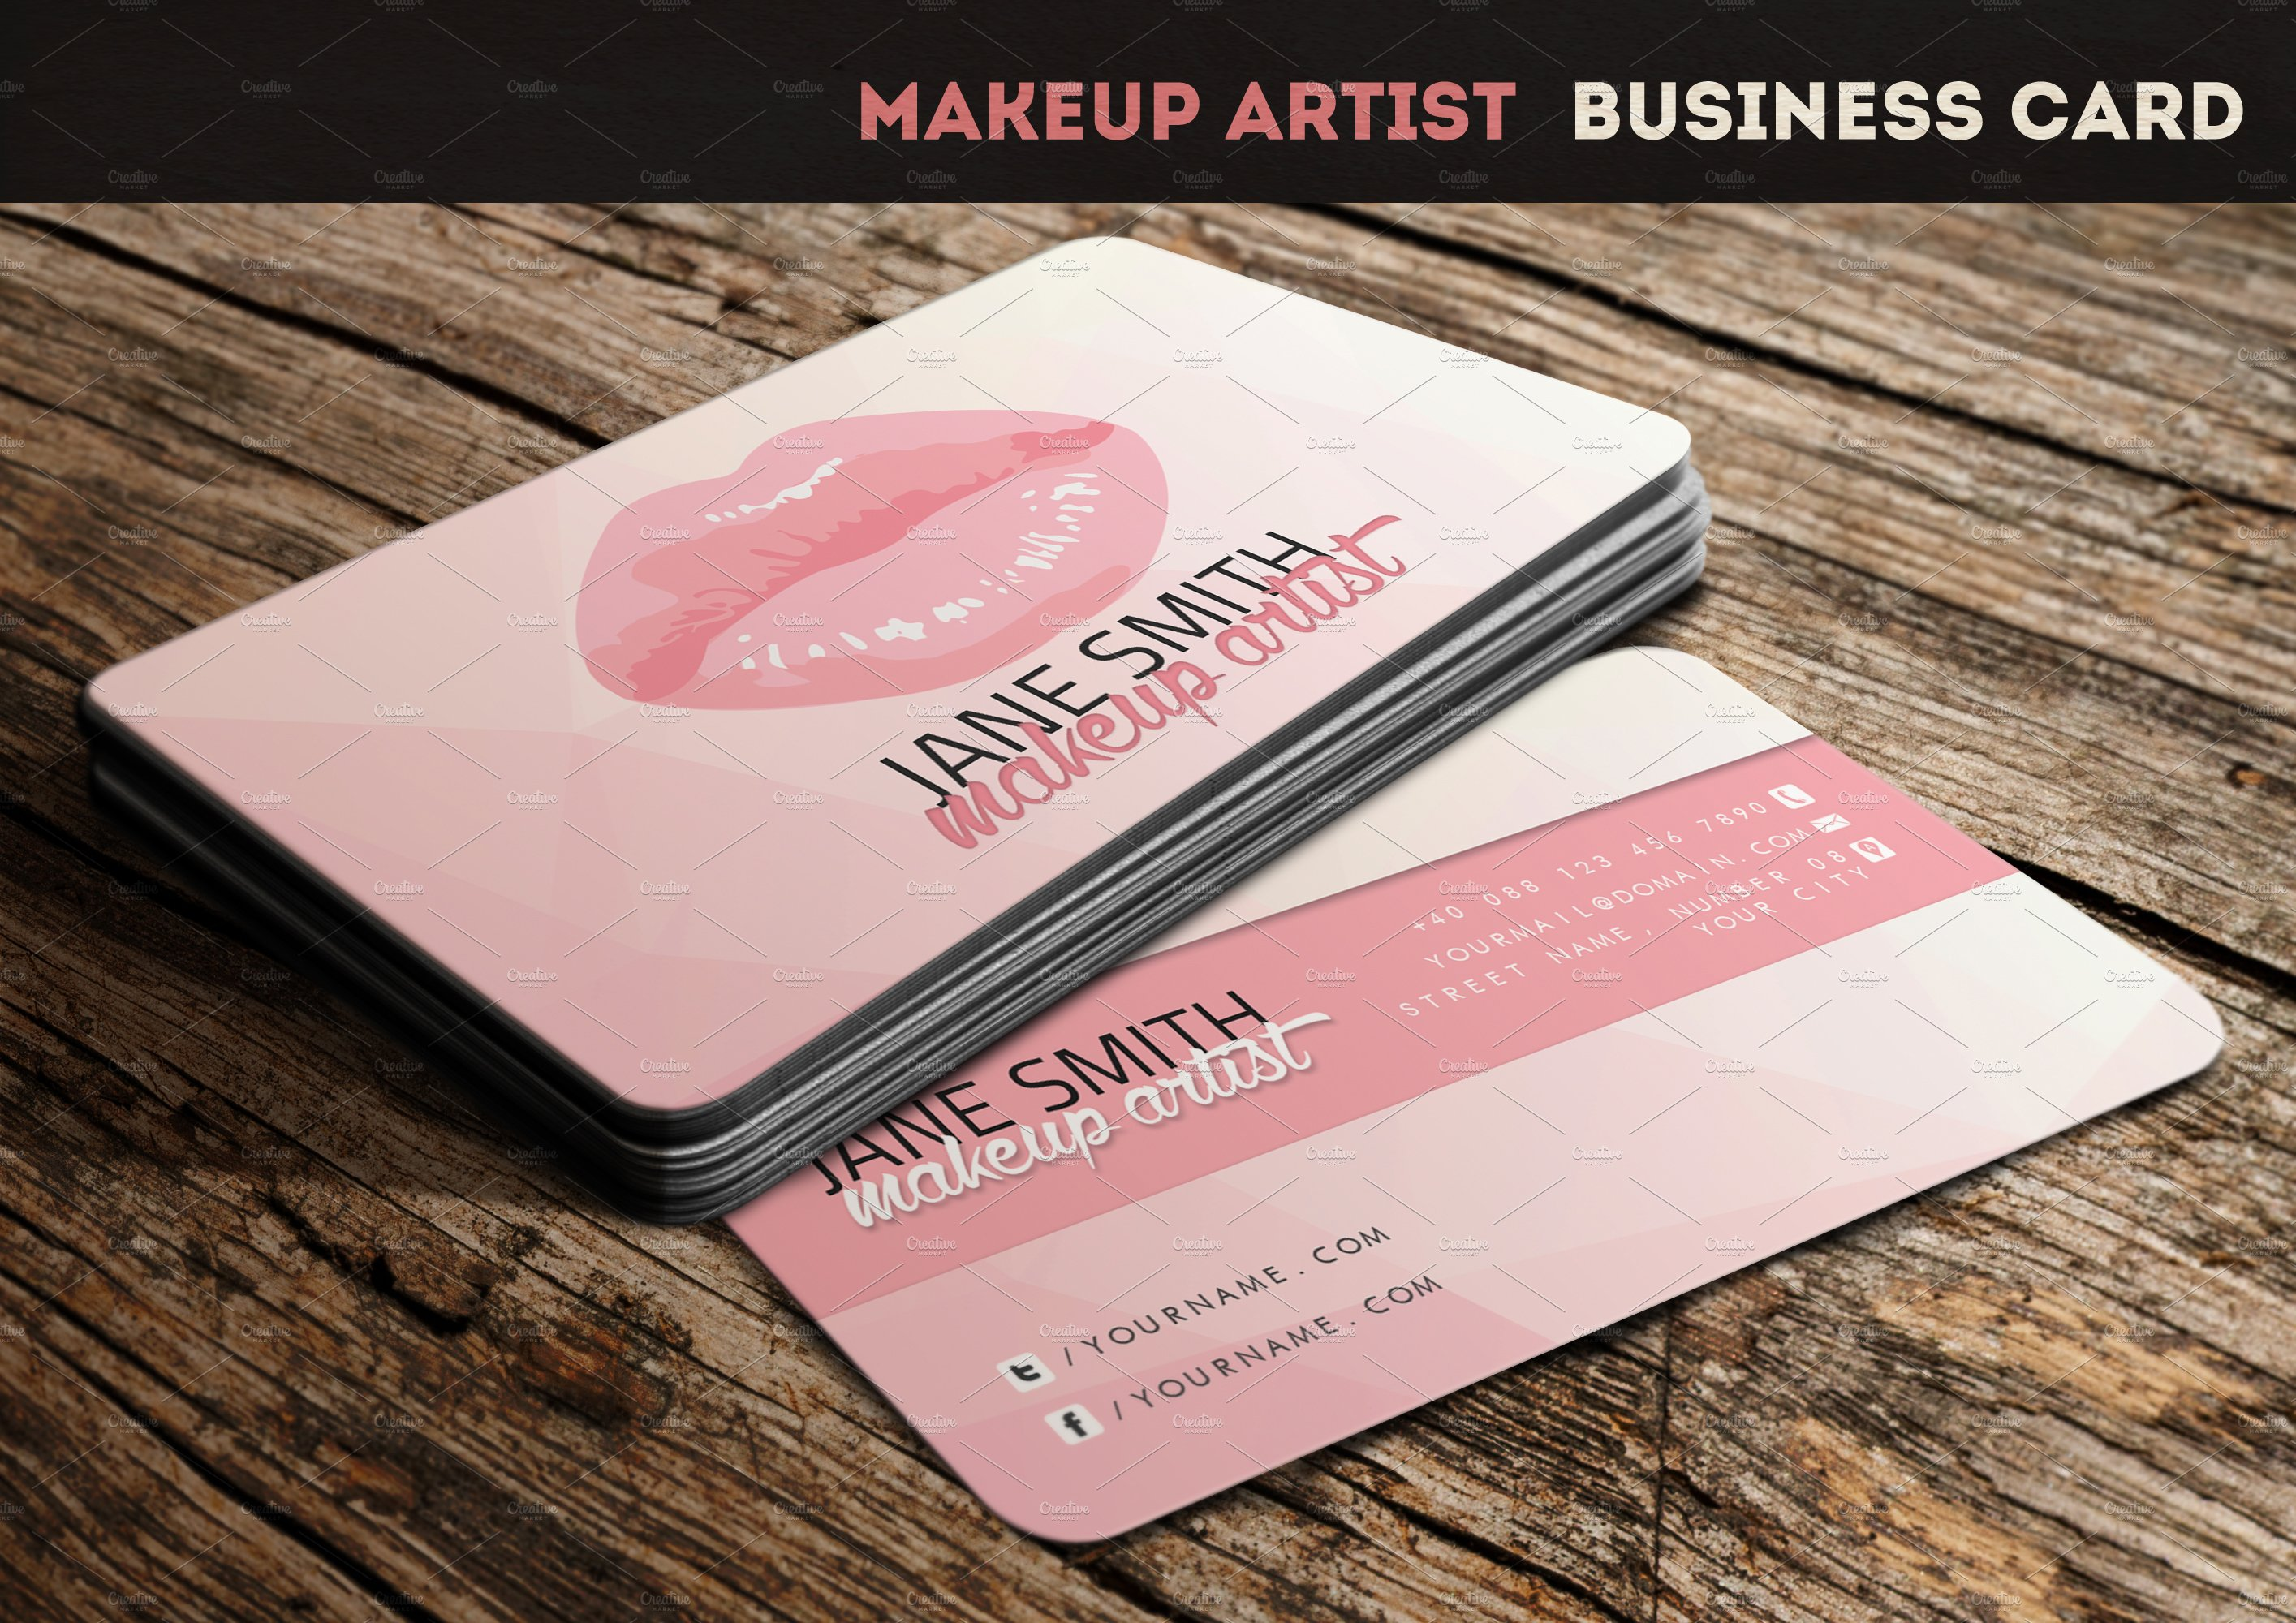 Makeup artist business card business card templates creative market fbccfo Choice Image